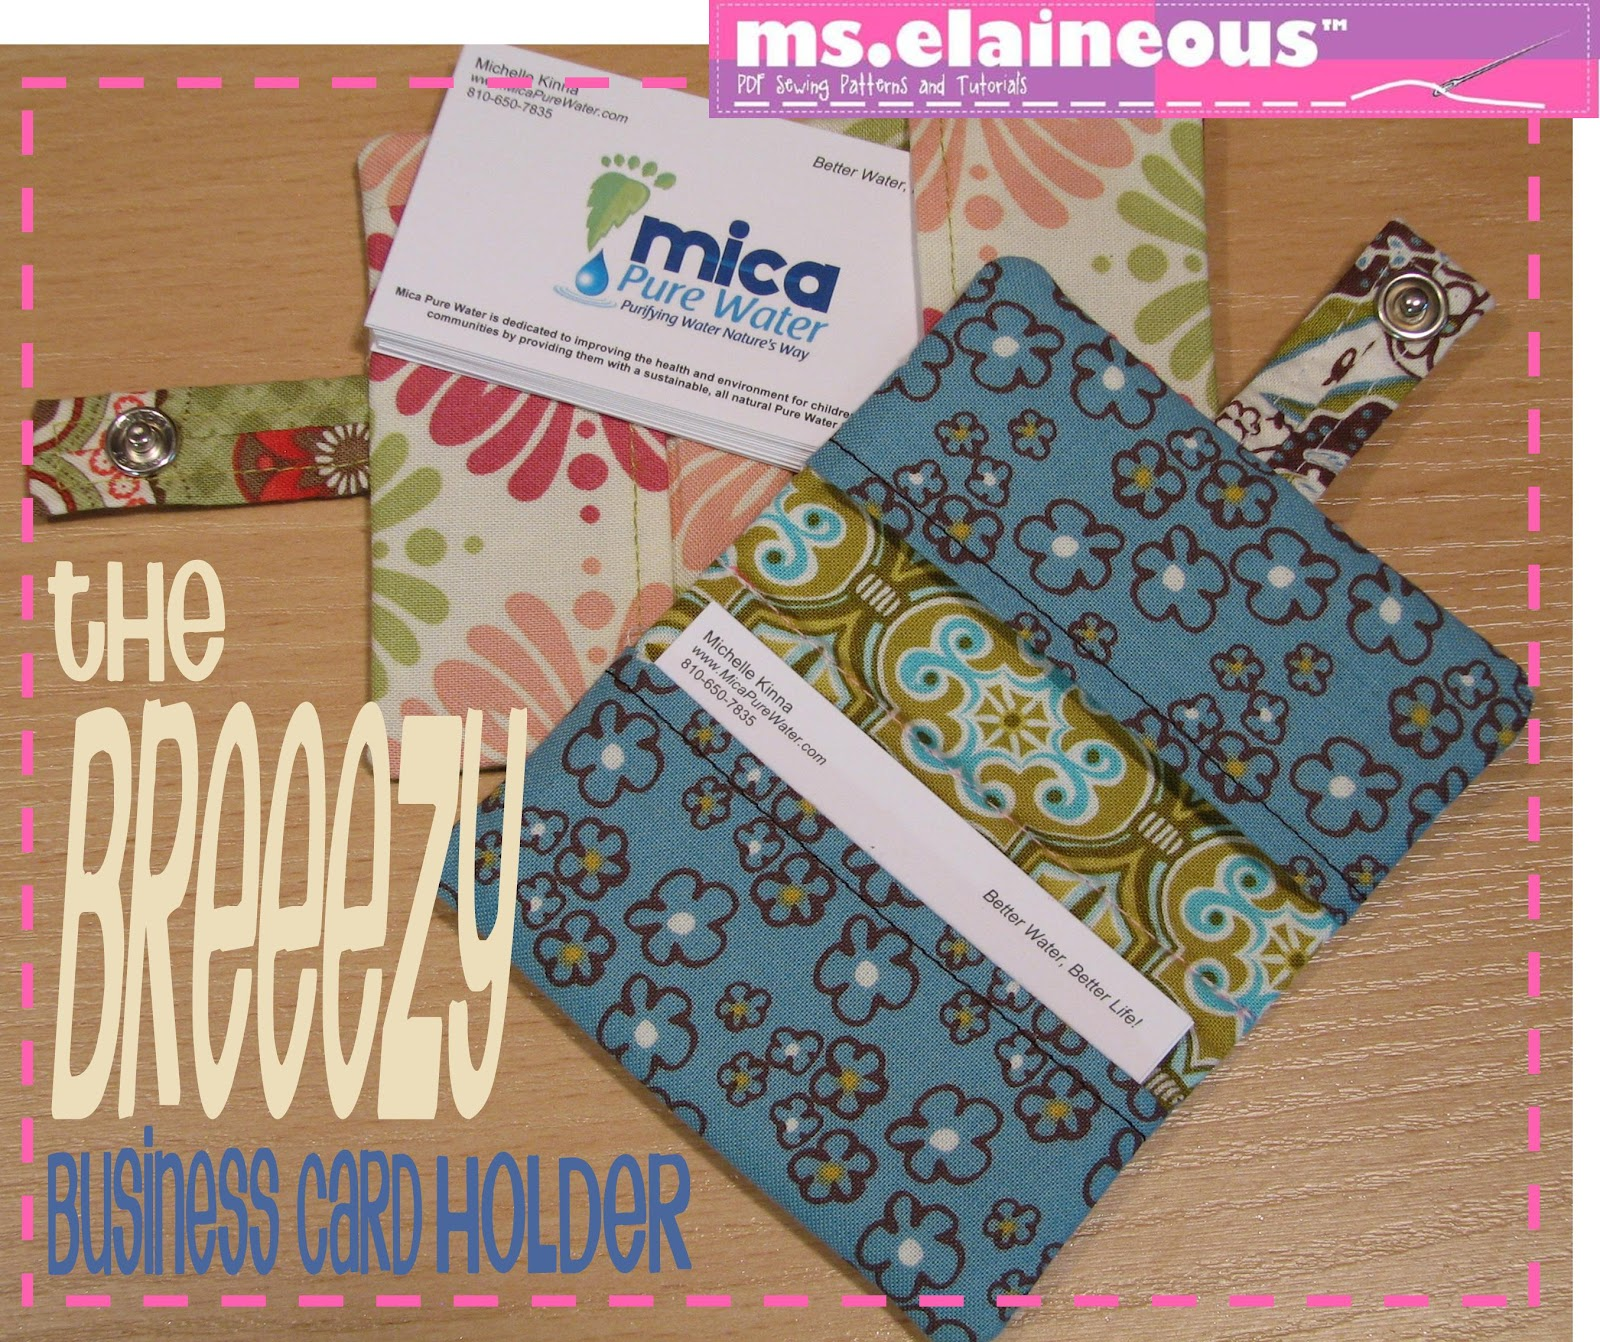 ms elaineous teaches sewing the breezy business card holder